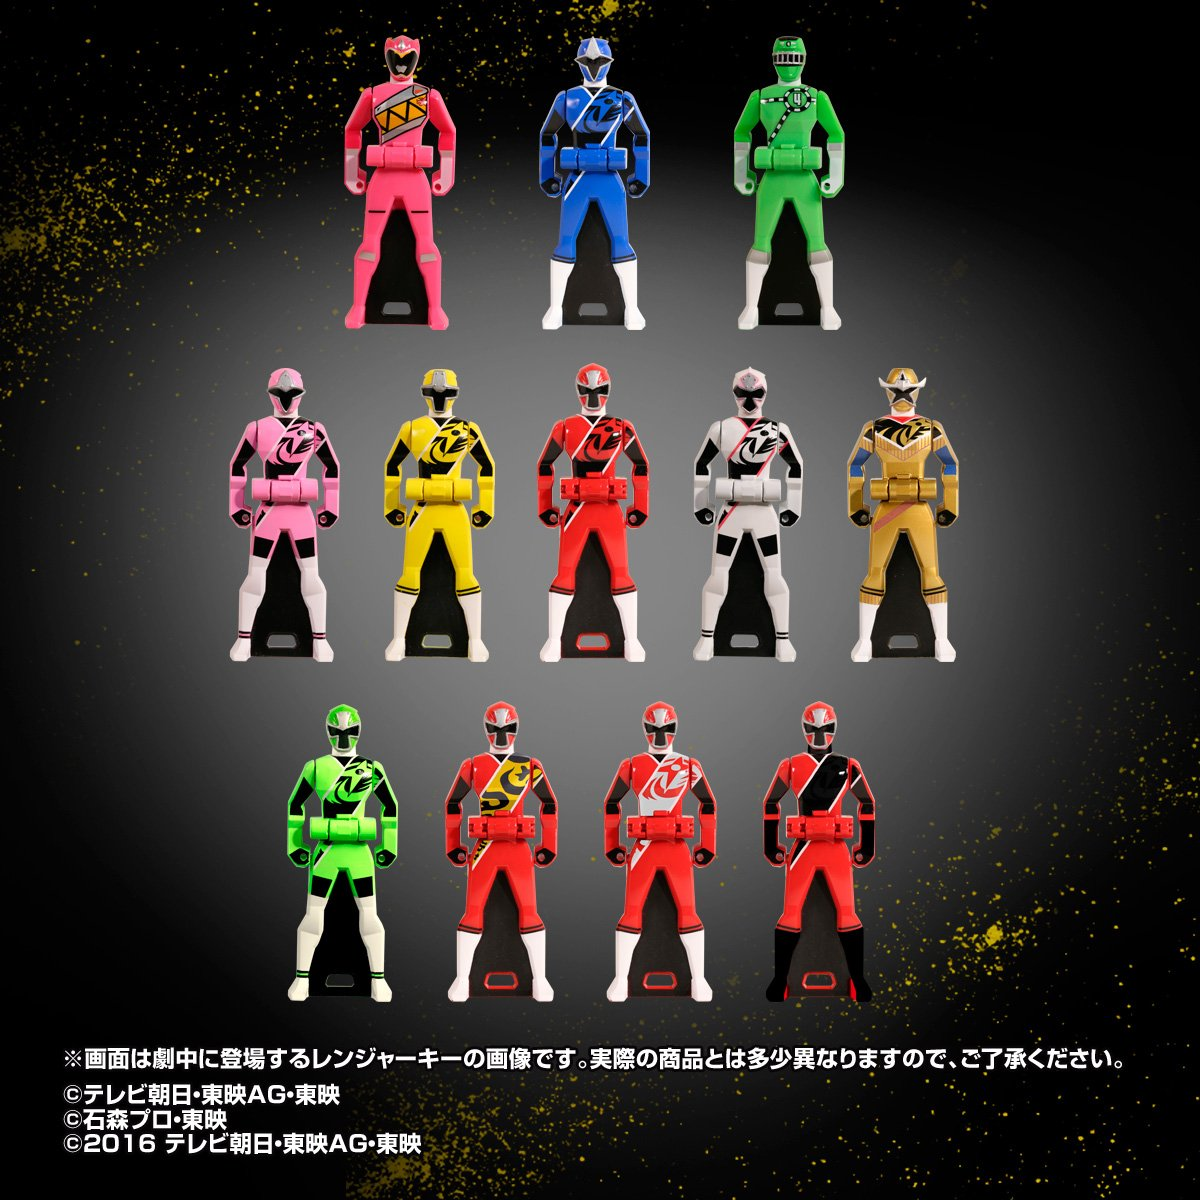 Toku Toy Box - Super Sentai Prize Package Announcement